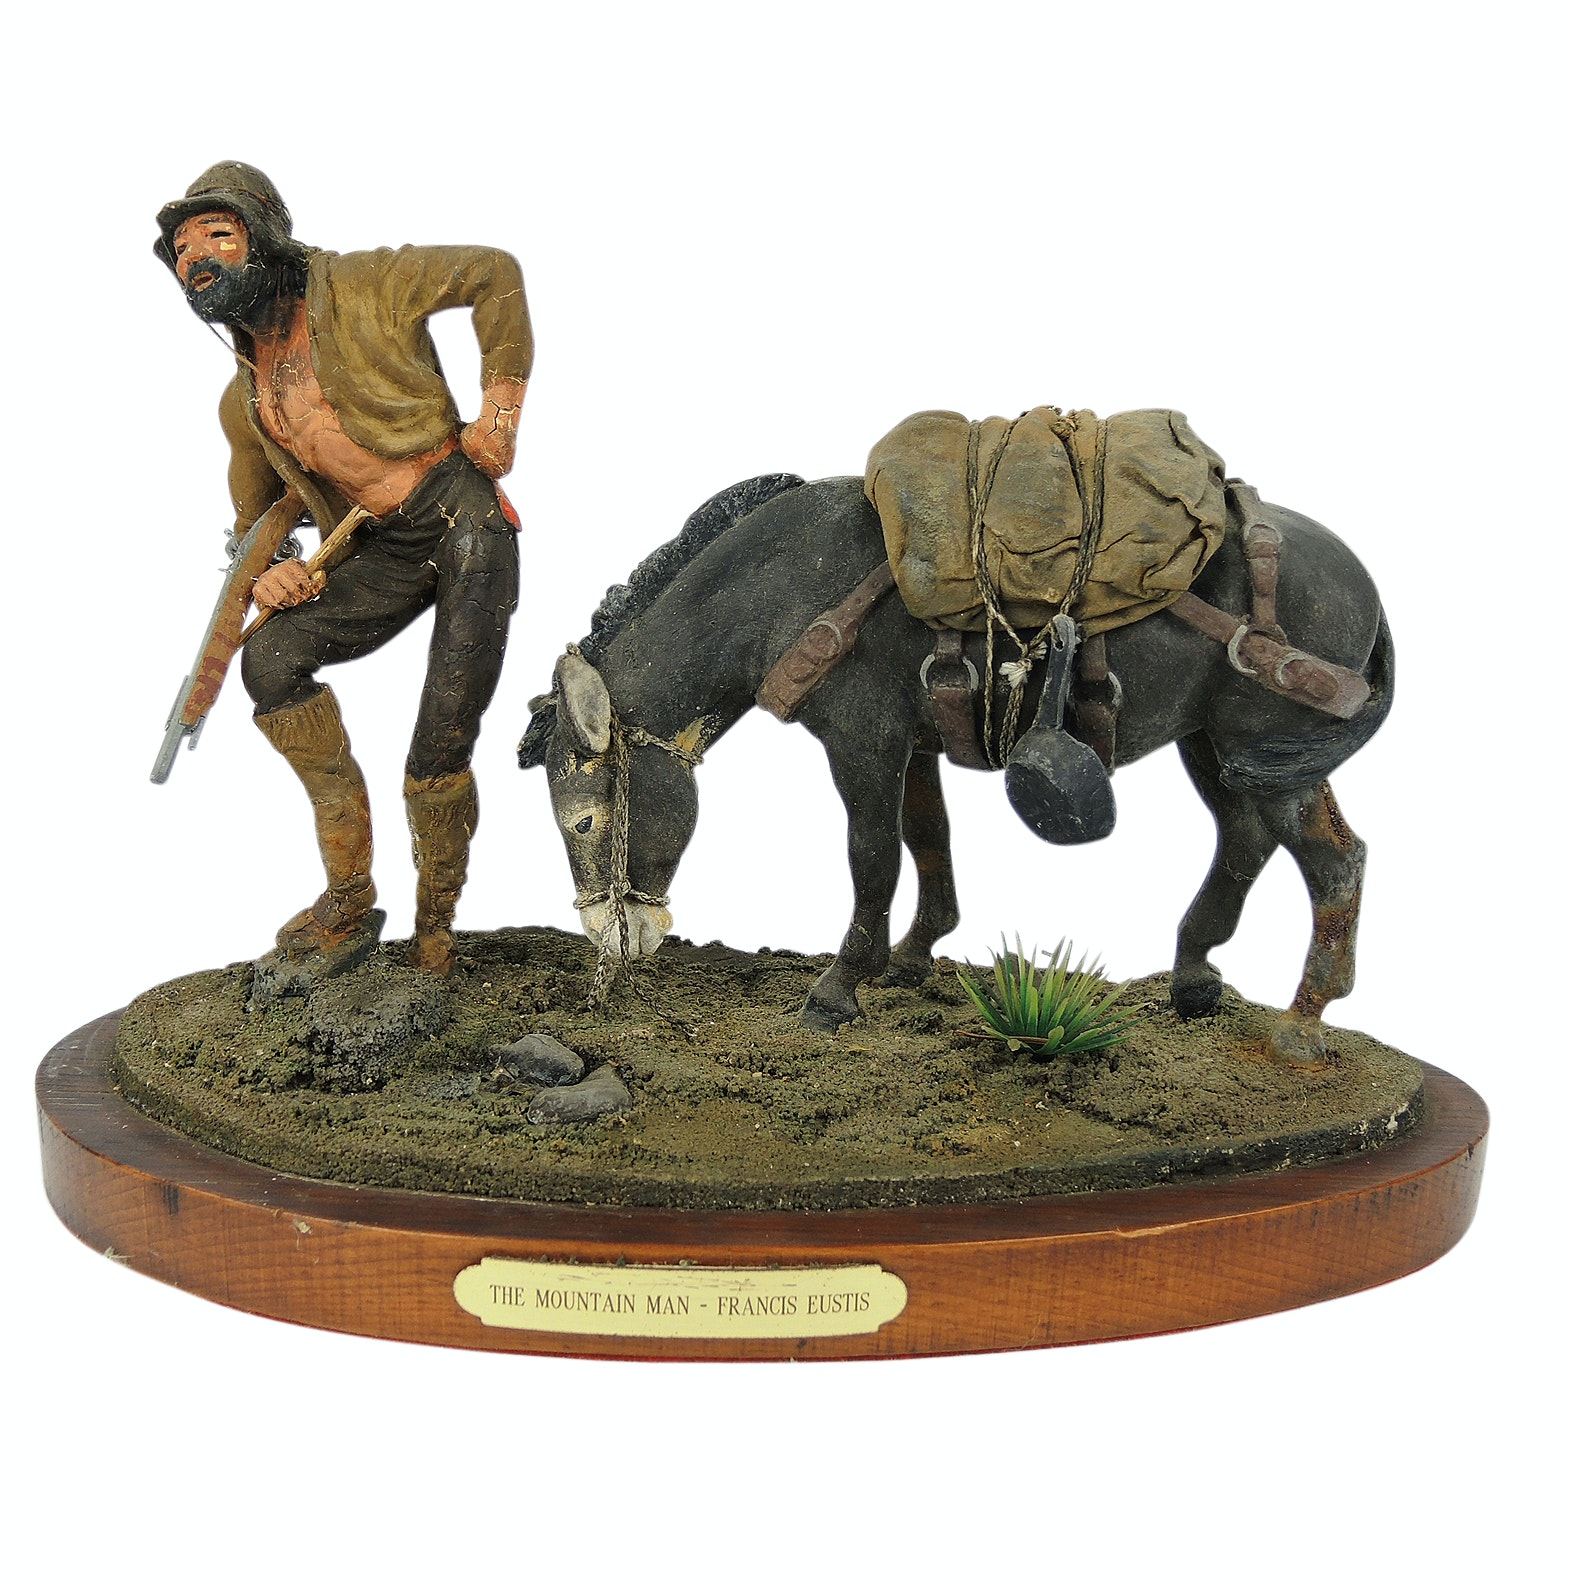 """Francis Eustis Hand Painted Sculpture """"The Mountain Man"""""""